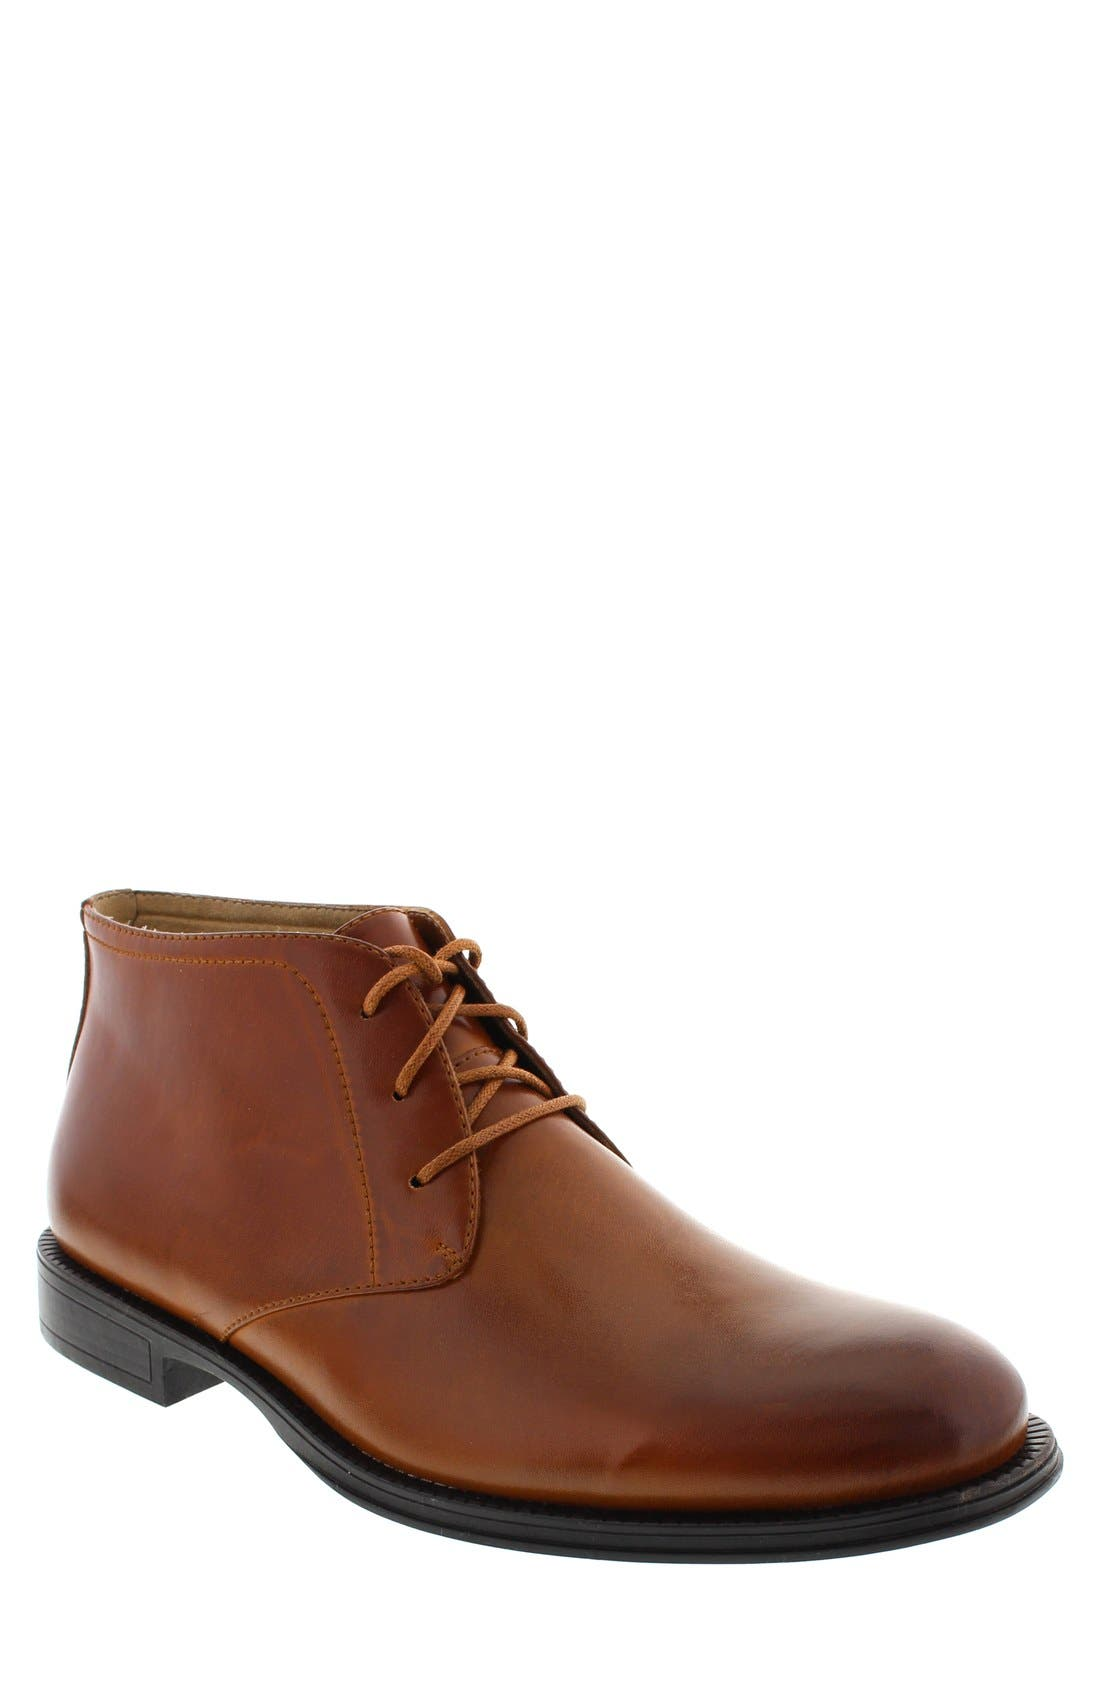 Deer Stags 'Mean' Leather Chukka Boot (Men)